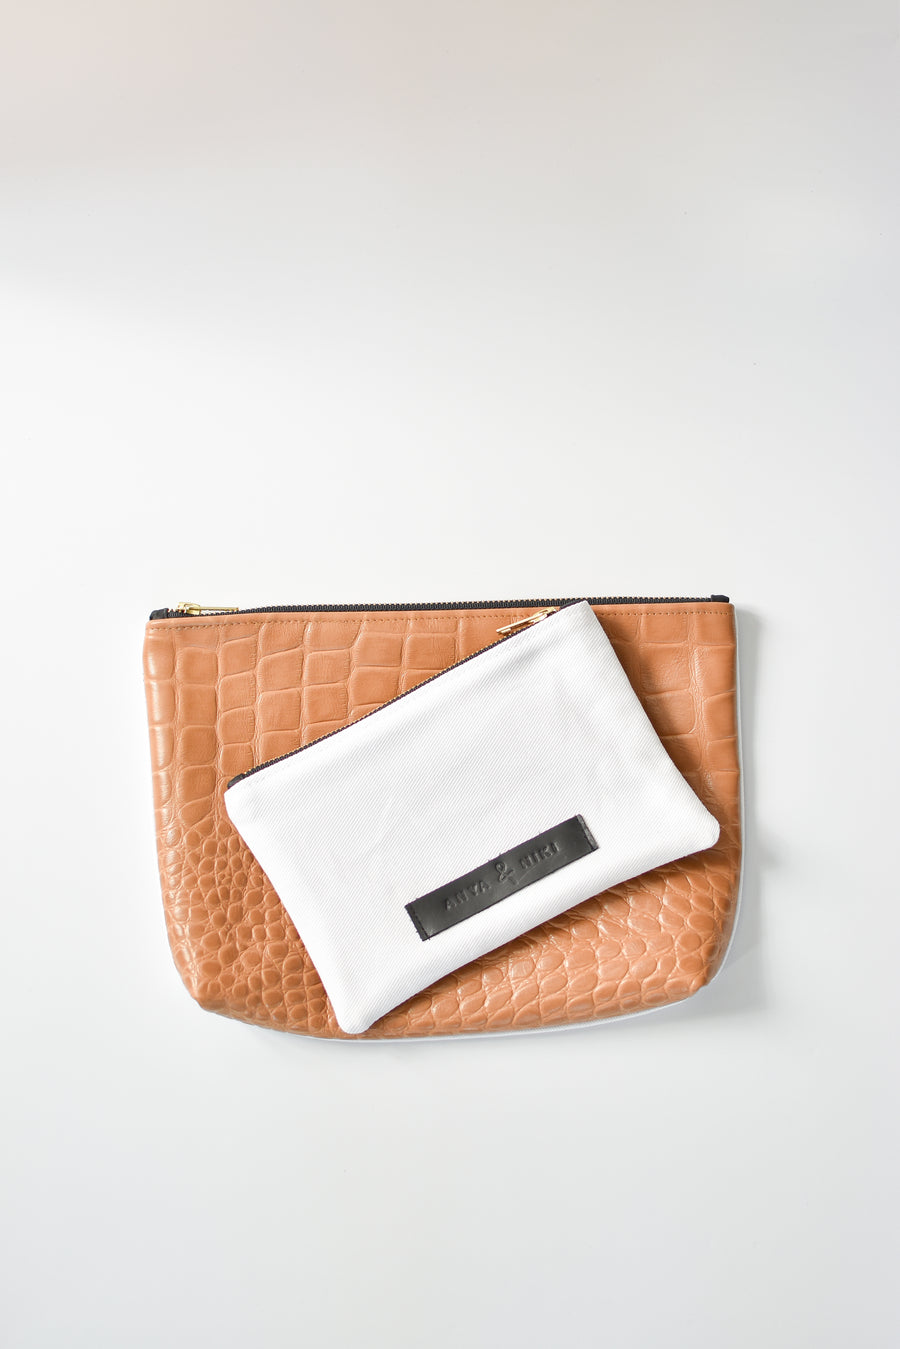 White denim and caramel colored embossed leather skin small and medium pouch with brass zipper and leather logo label.